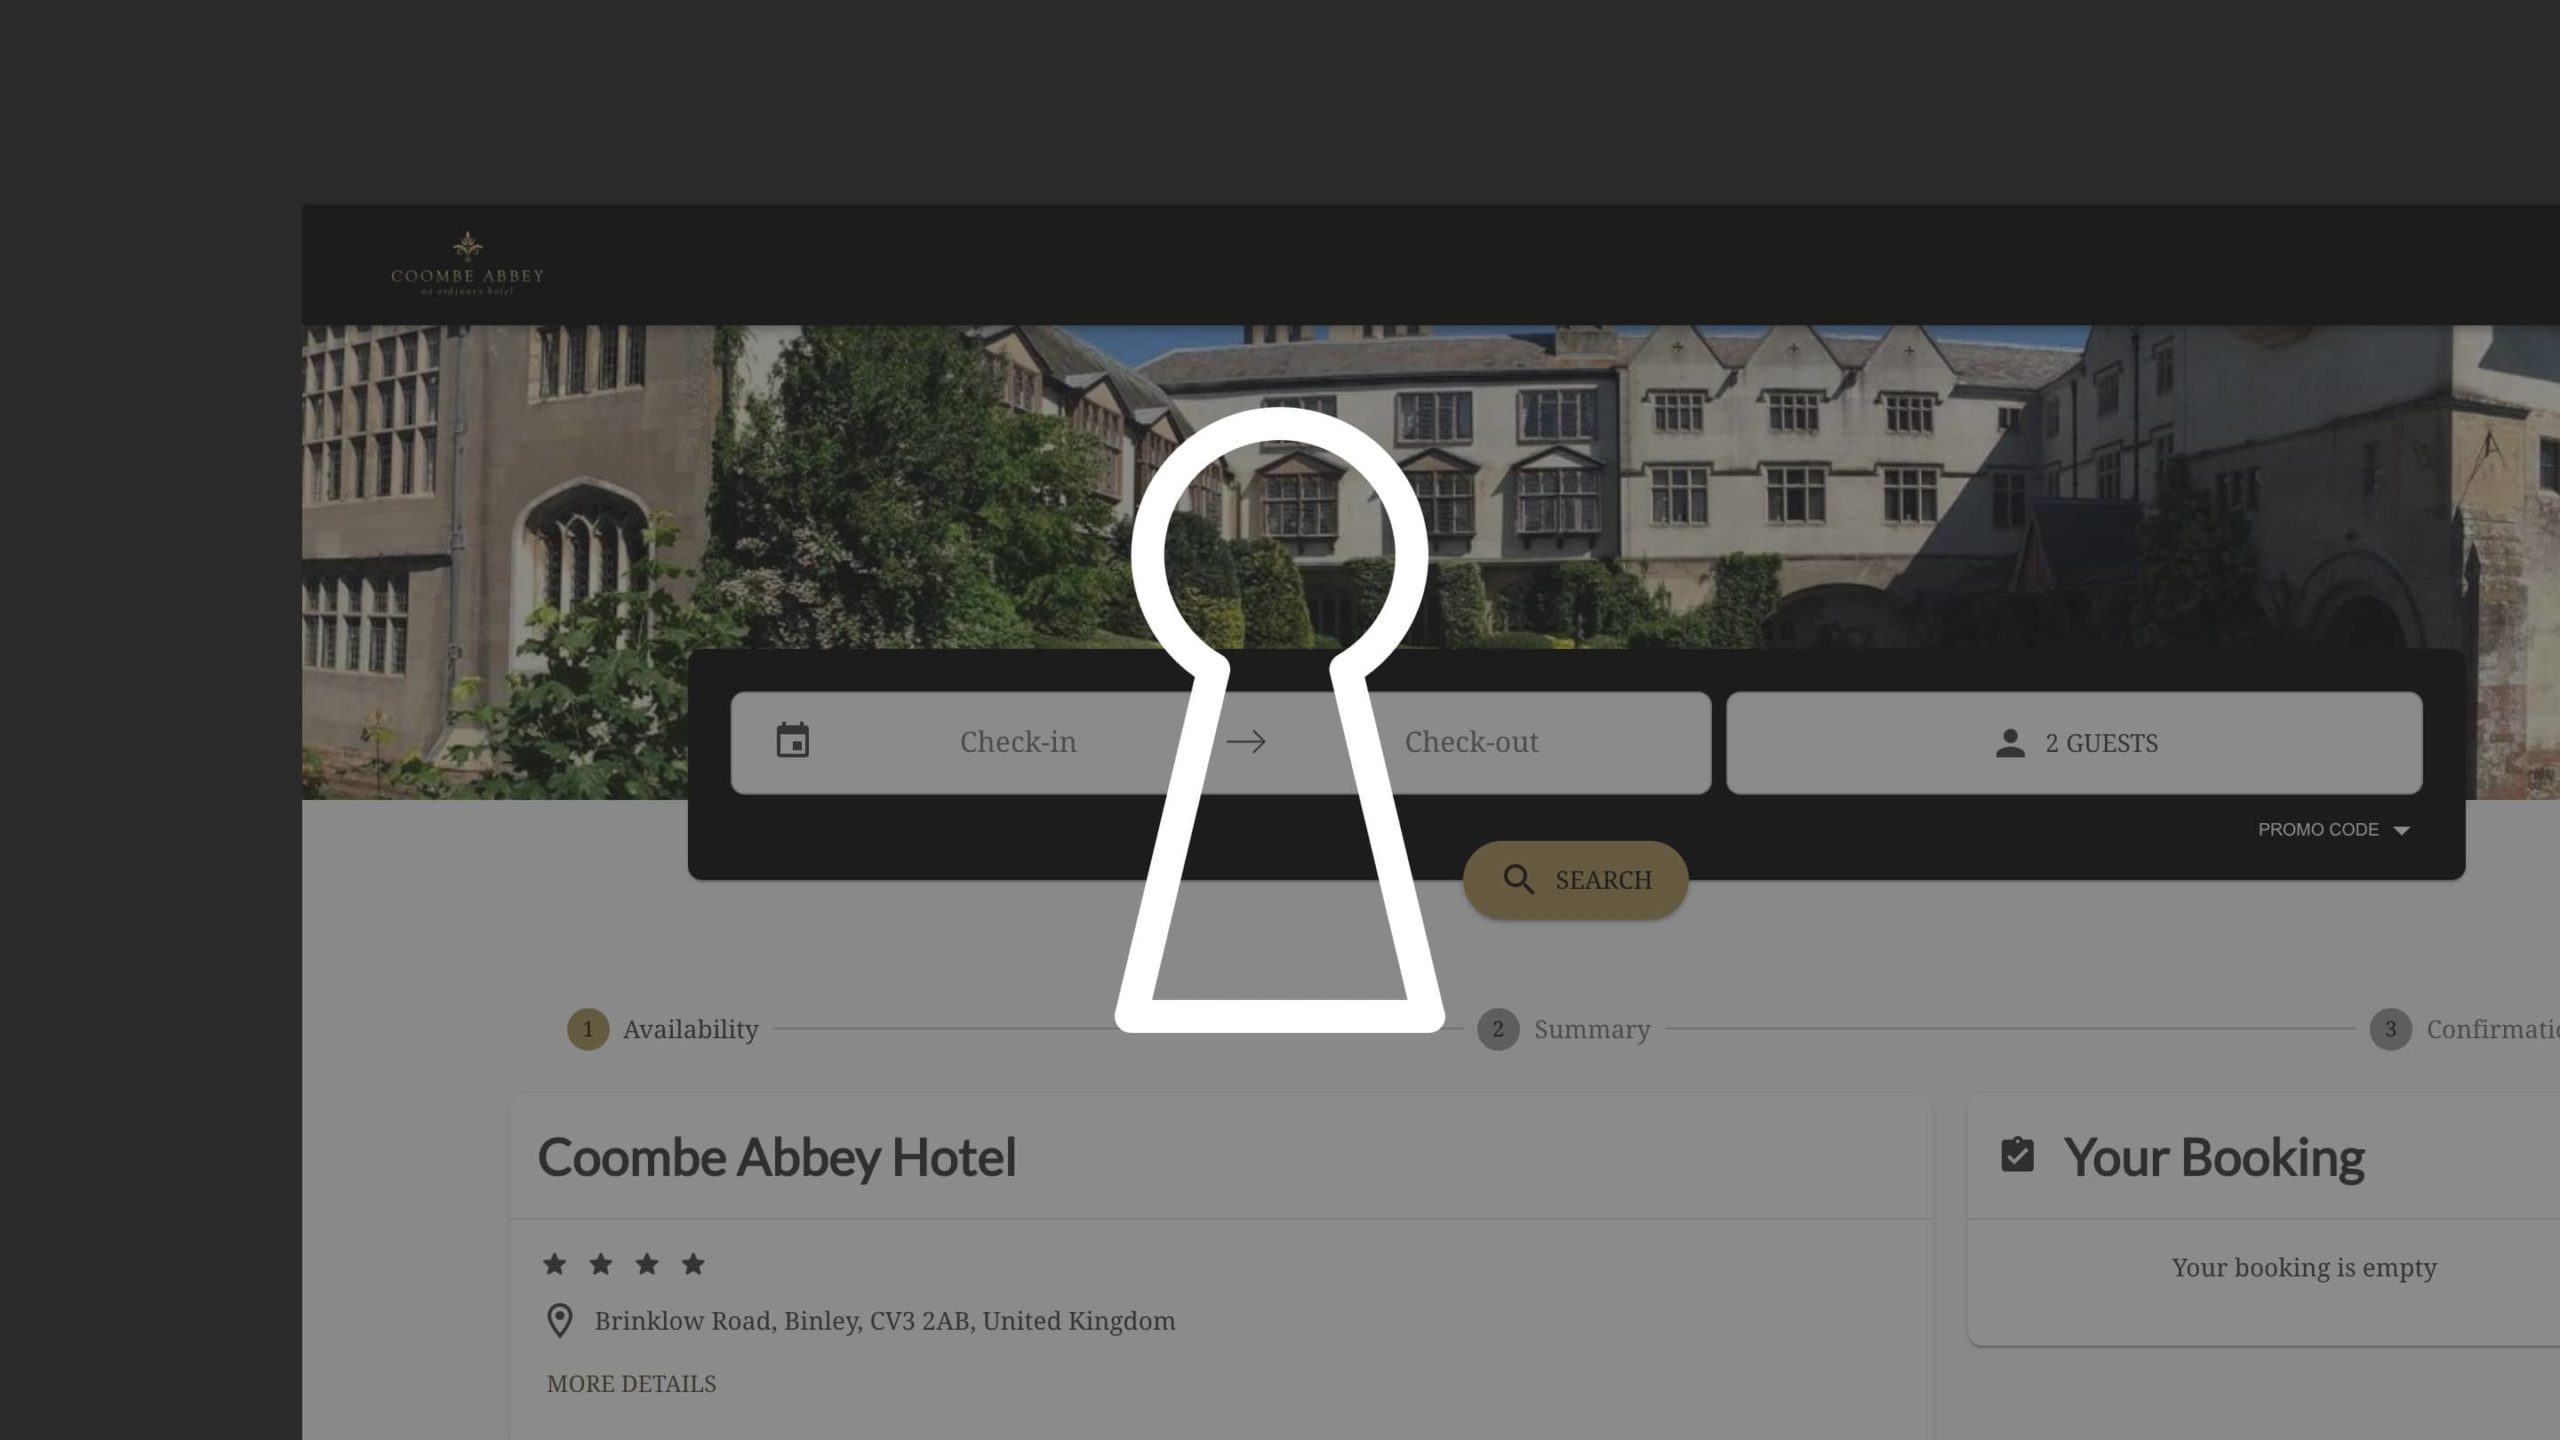 The secret to securing bookings through your website